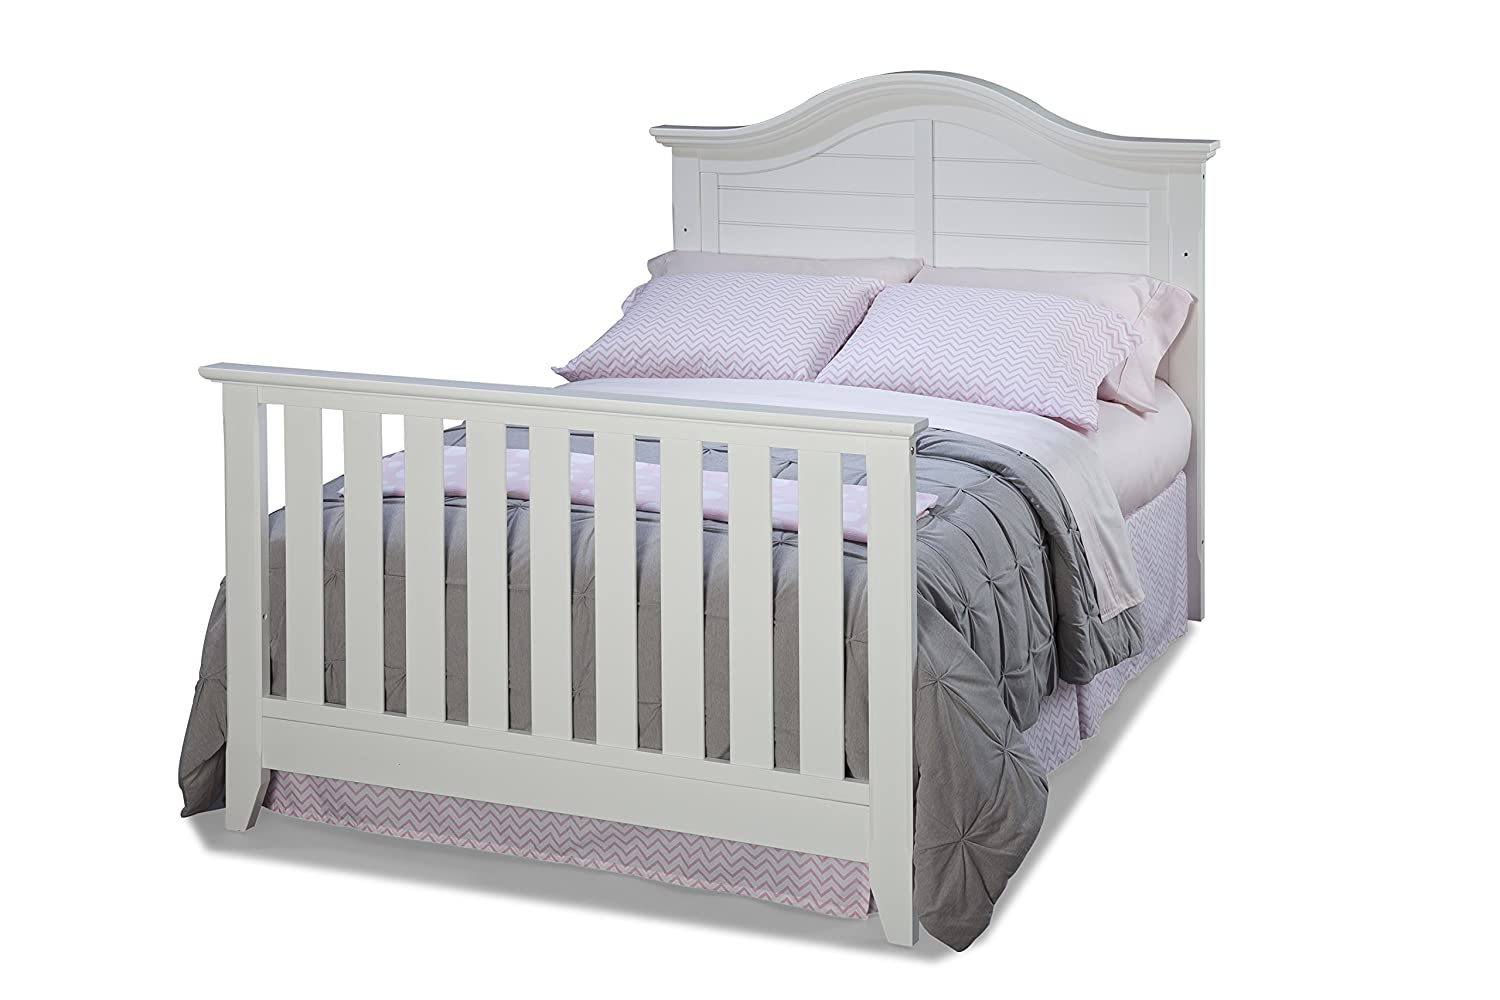 Genial Amazon.com : Thomasville Kids Southern Dunes Lifestyle 4 In 1 Convertible  Crib, Espresso, Easily Converts To Toddler Bed Day Bed Or Full Bed, Three  Position ...